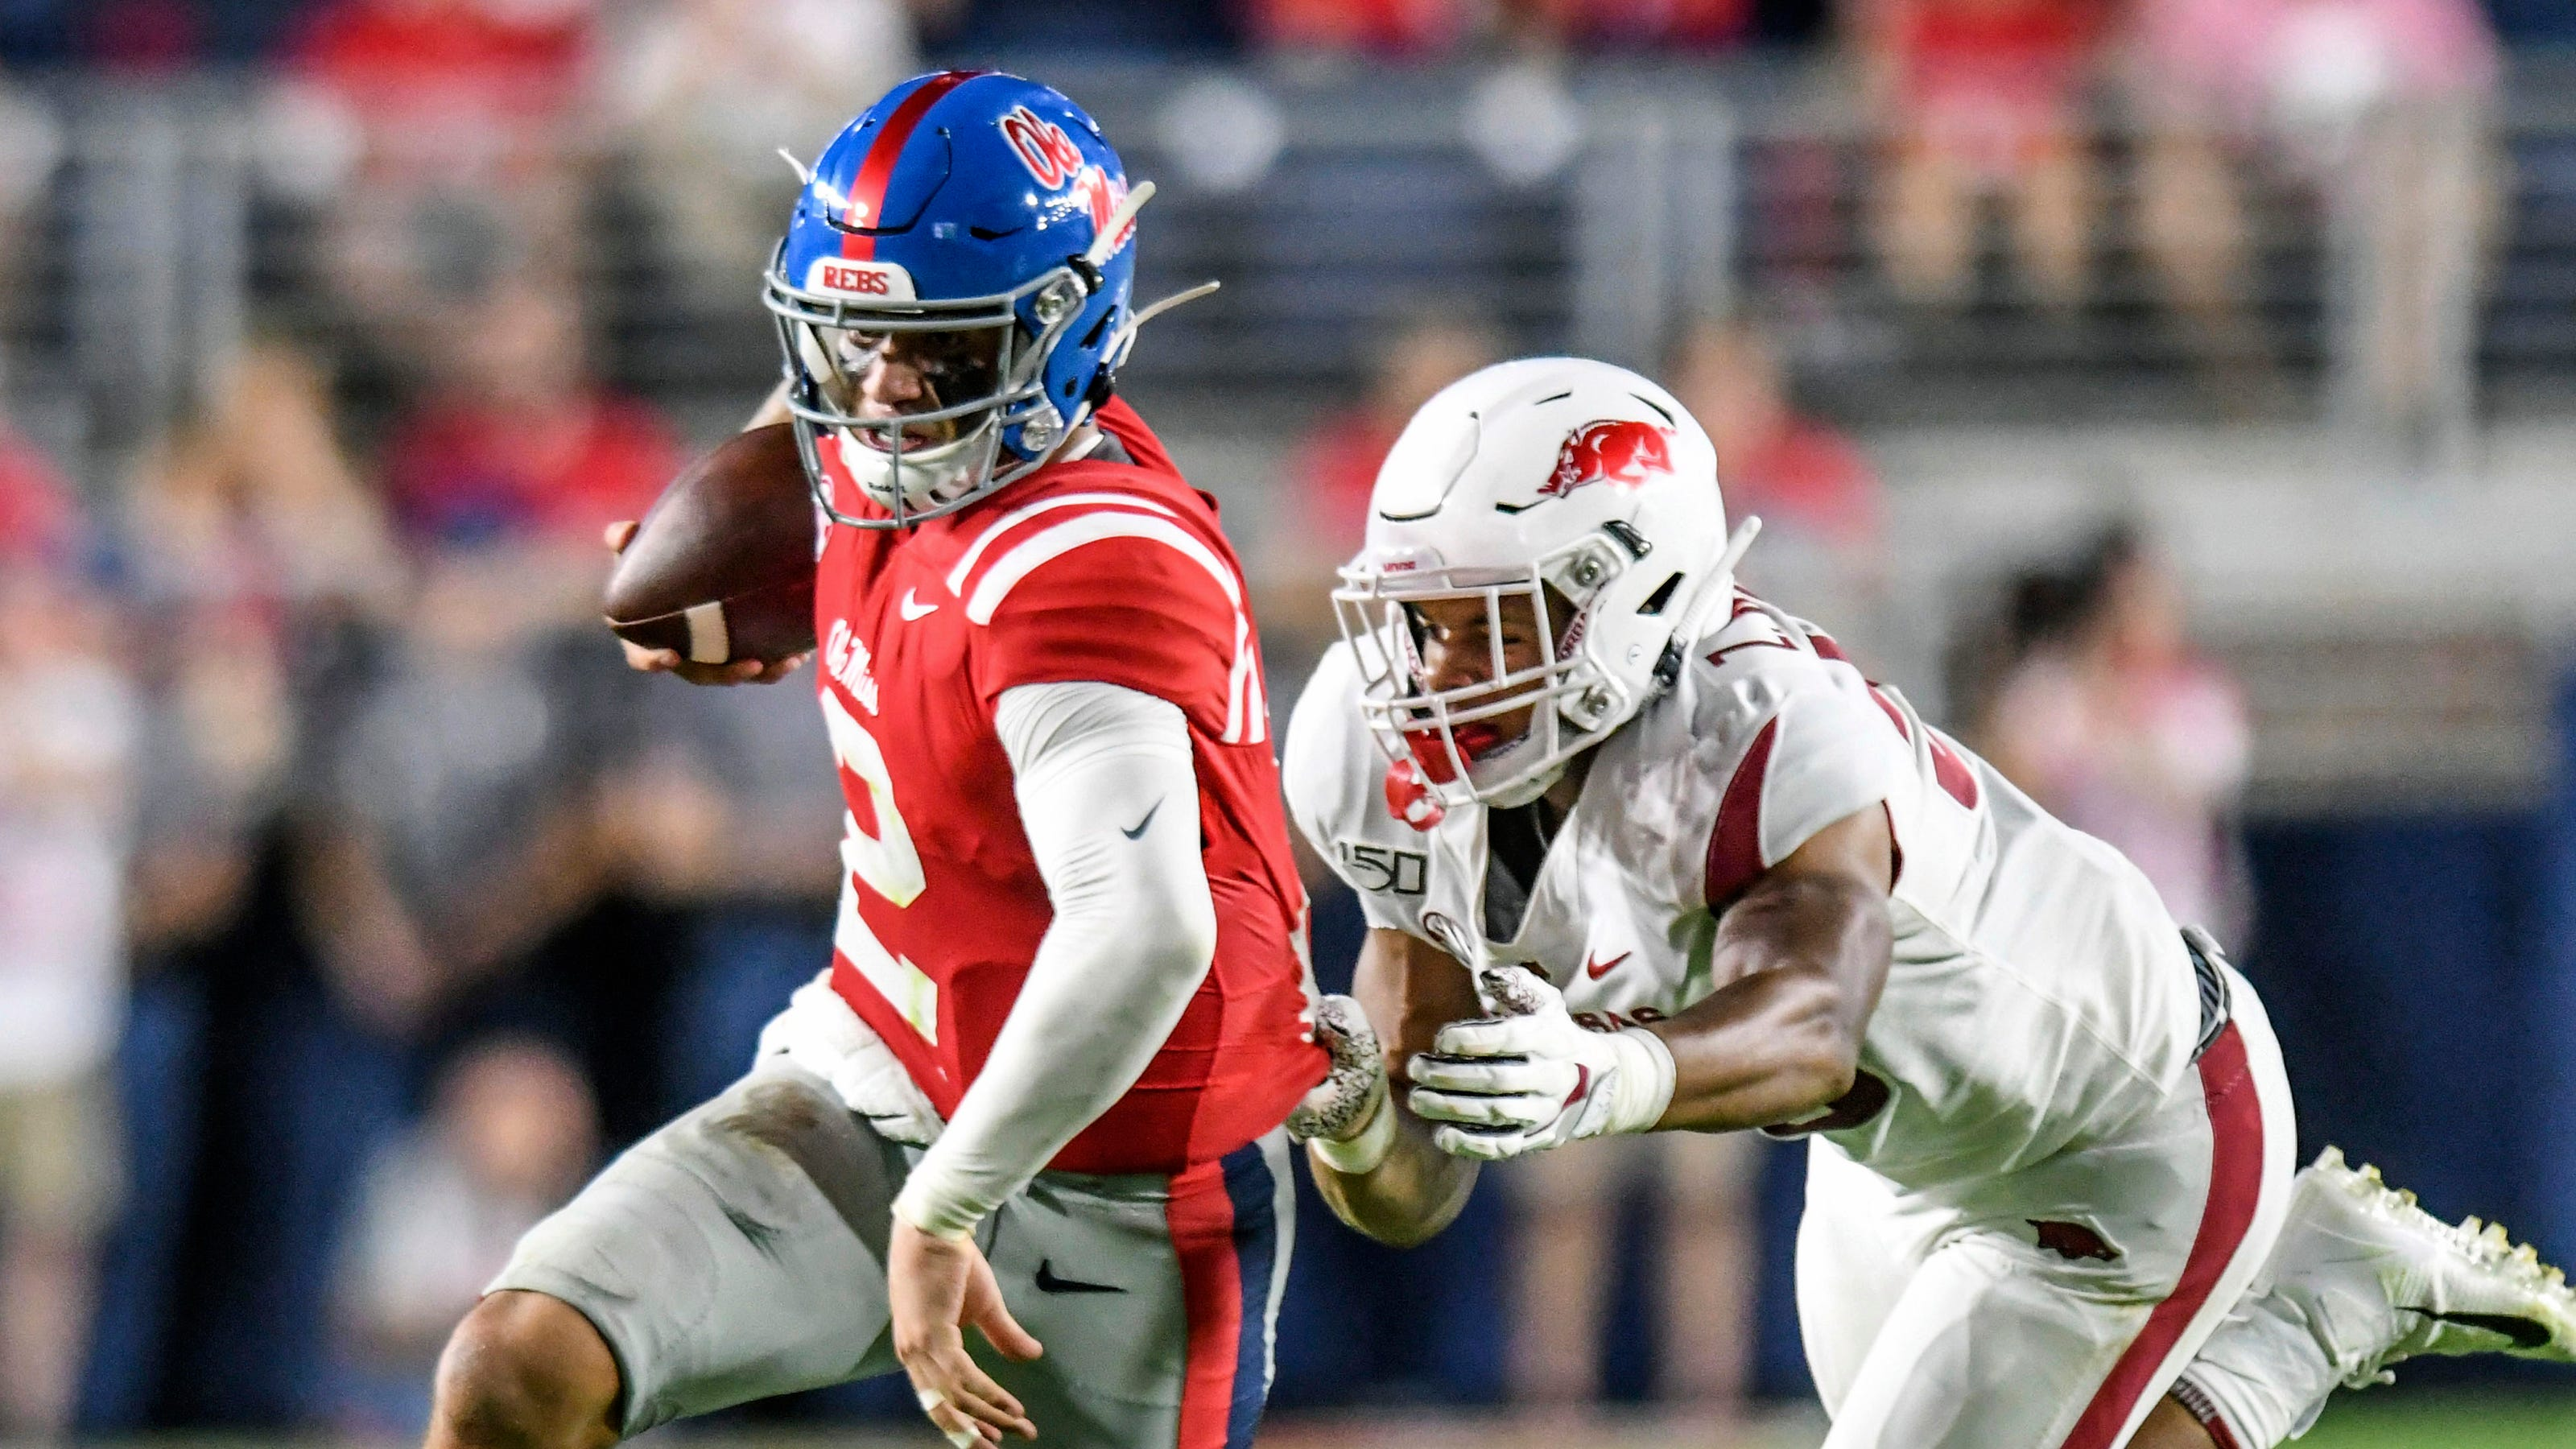 Outback Bowl 2021: Ole Miss football vs. Indiana how to ...